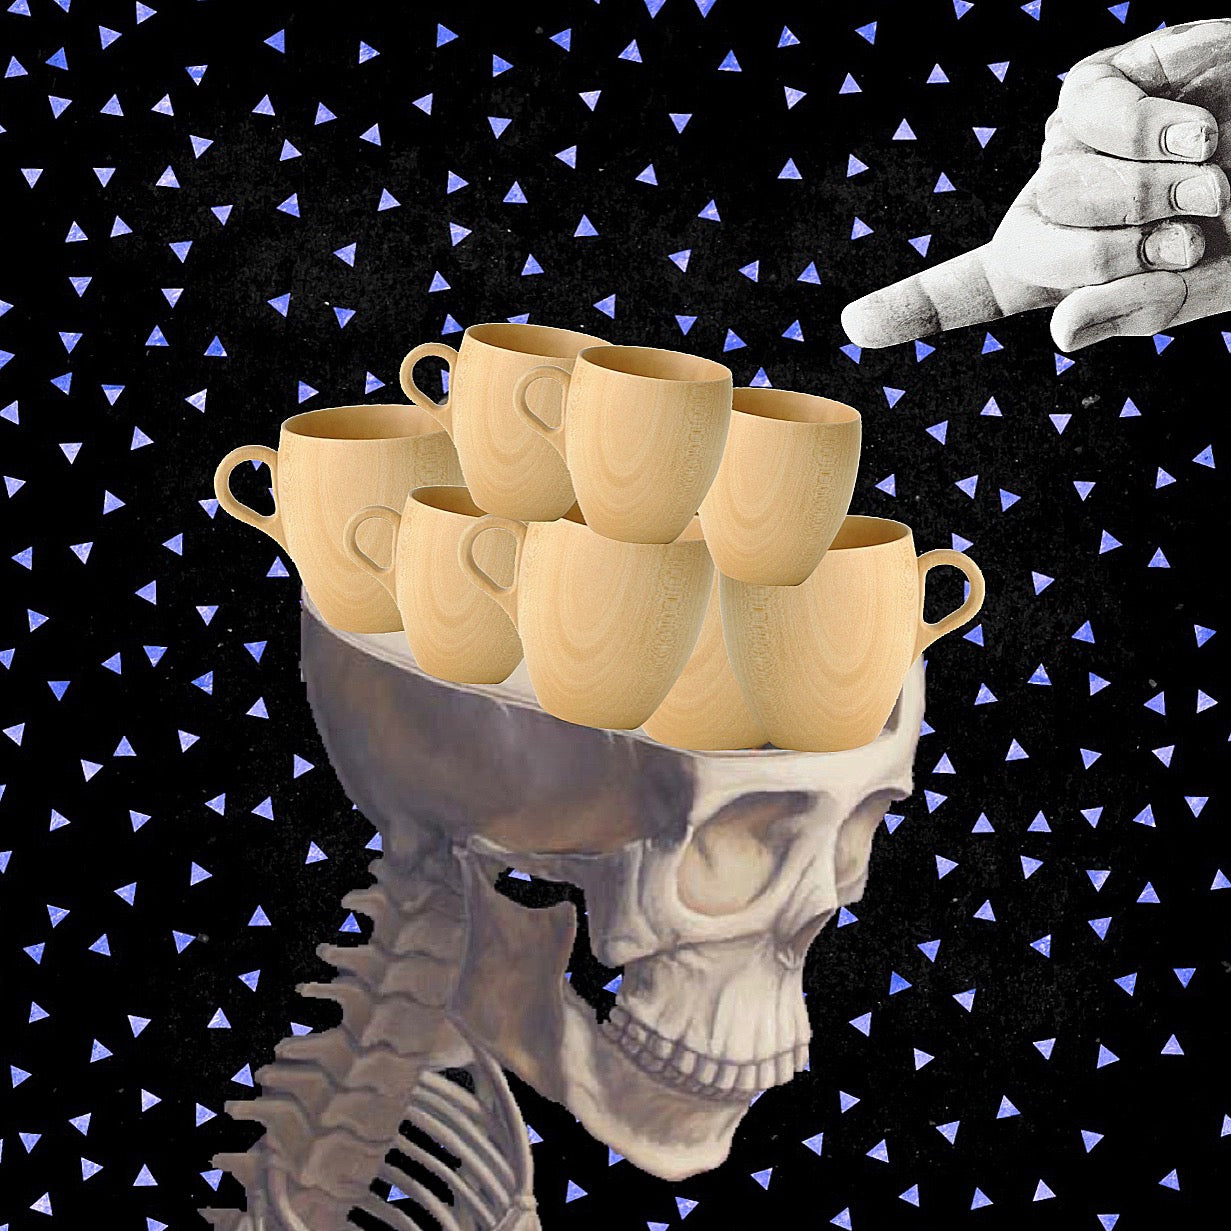 5x5 Coffee Card * Skull Cups